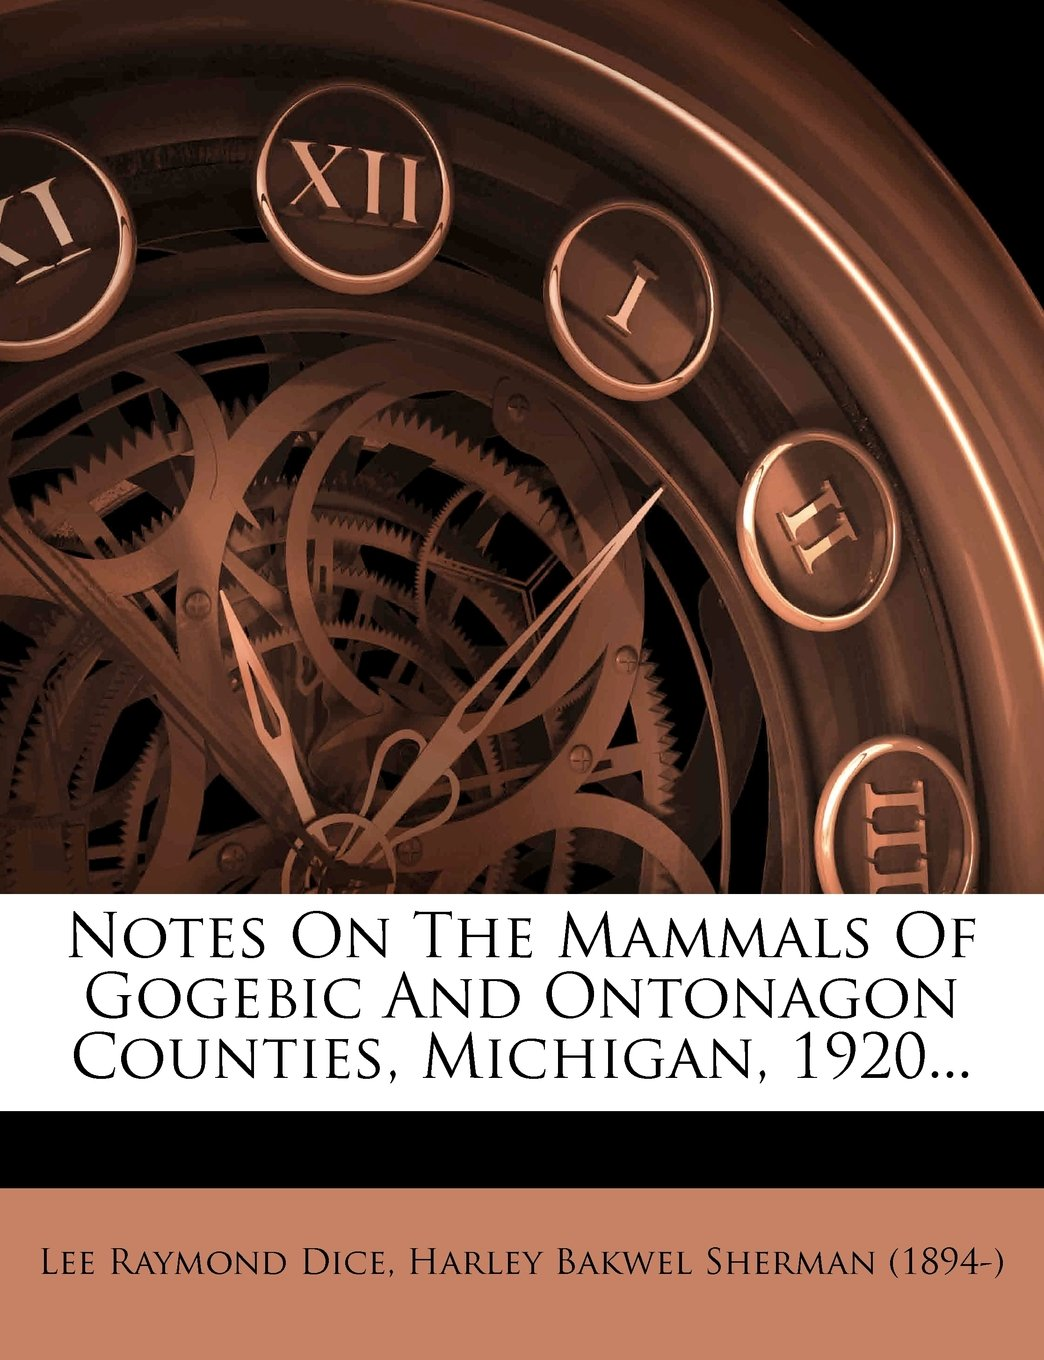 Notes On The Mammals Of Gogebic And Ontonagon Counties, Michigan, 1920... PDF